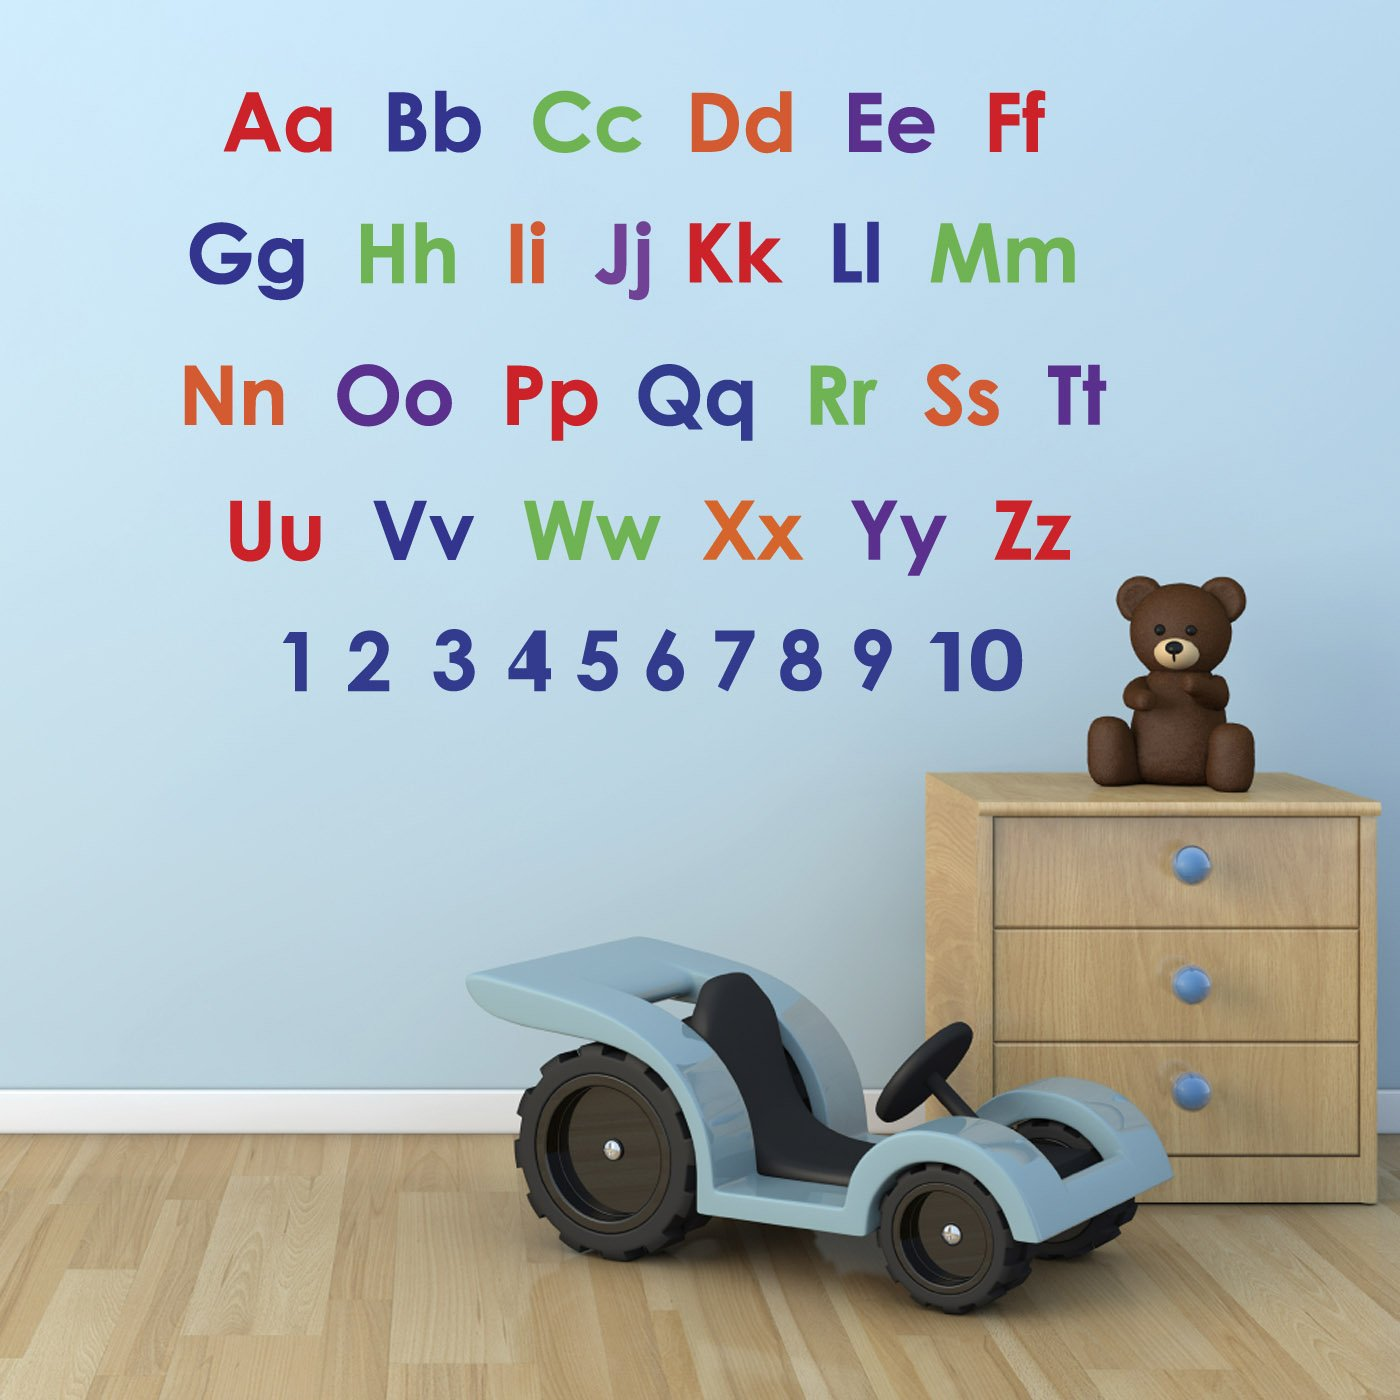 Alphabet And Numbers Wall Sticker Pack   Educational Nursery Stickers:  Amazon.co.uk: Kitchen U0026 Home Part 44